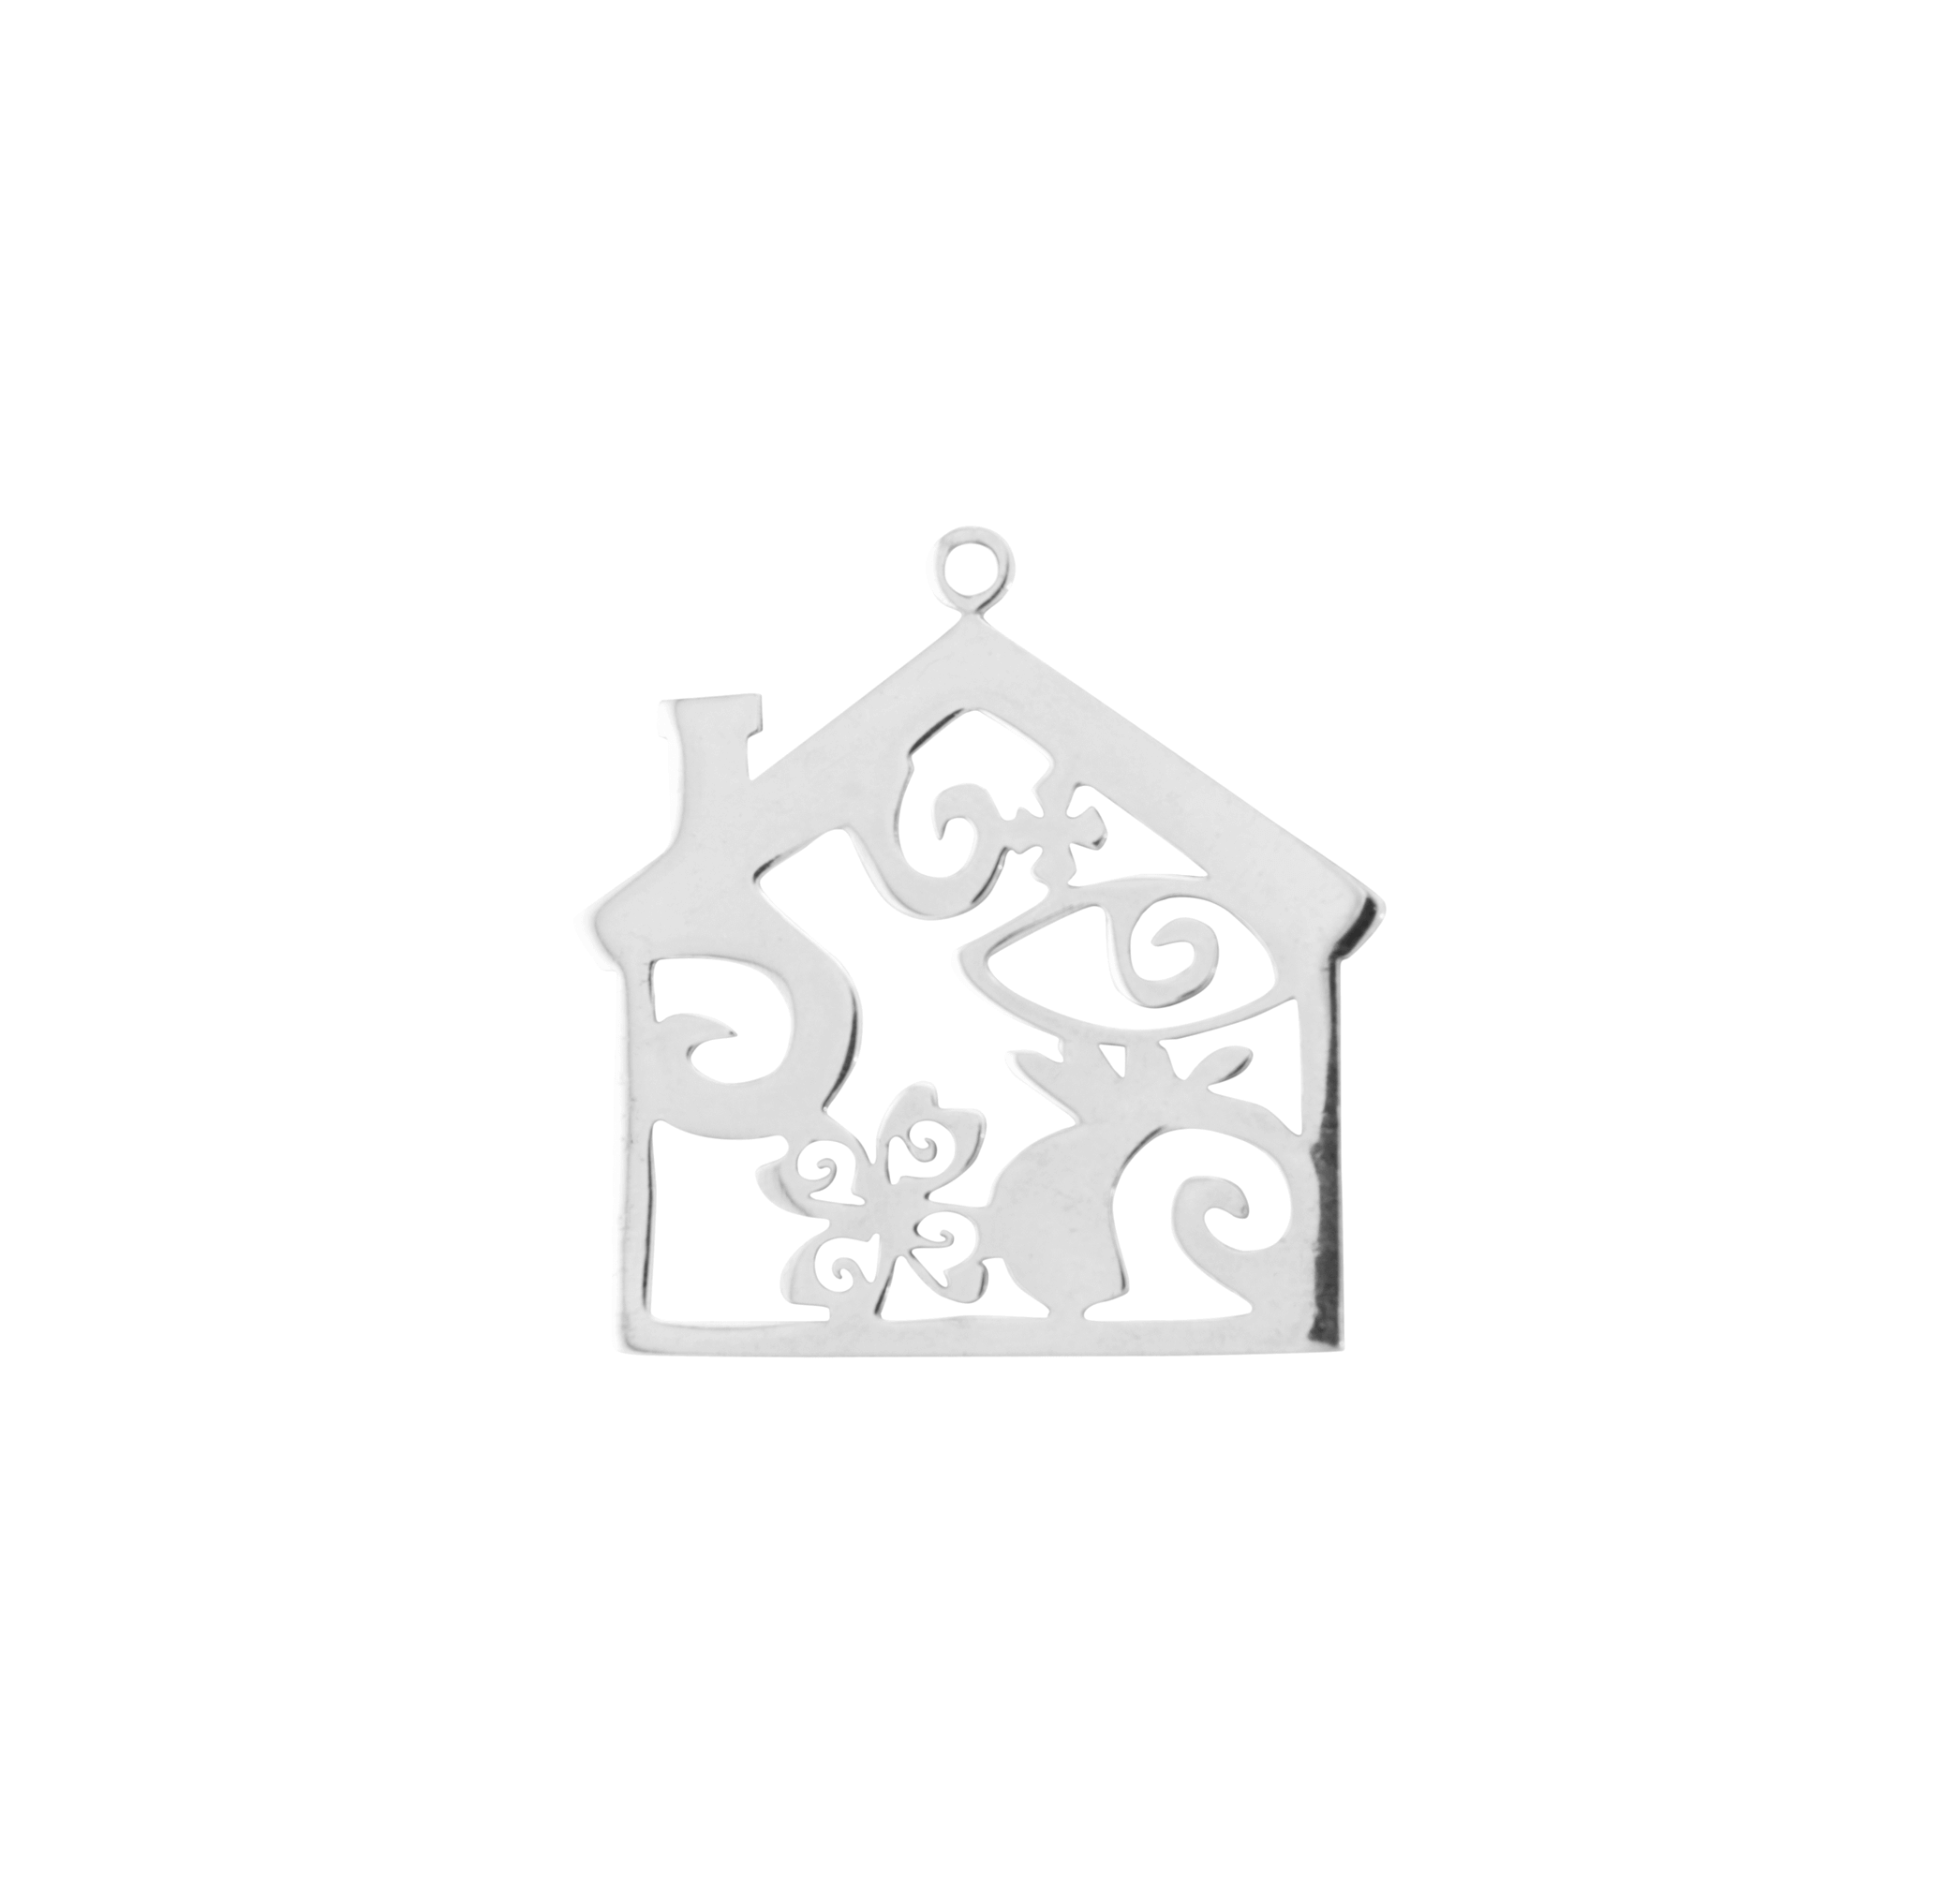 HOUSE SILVER PLATED 45mm (BRASS)